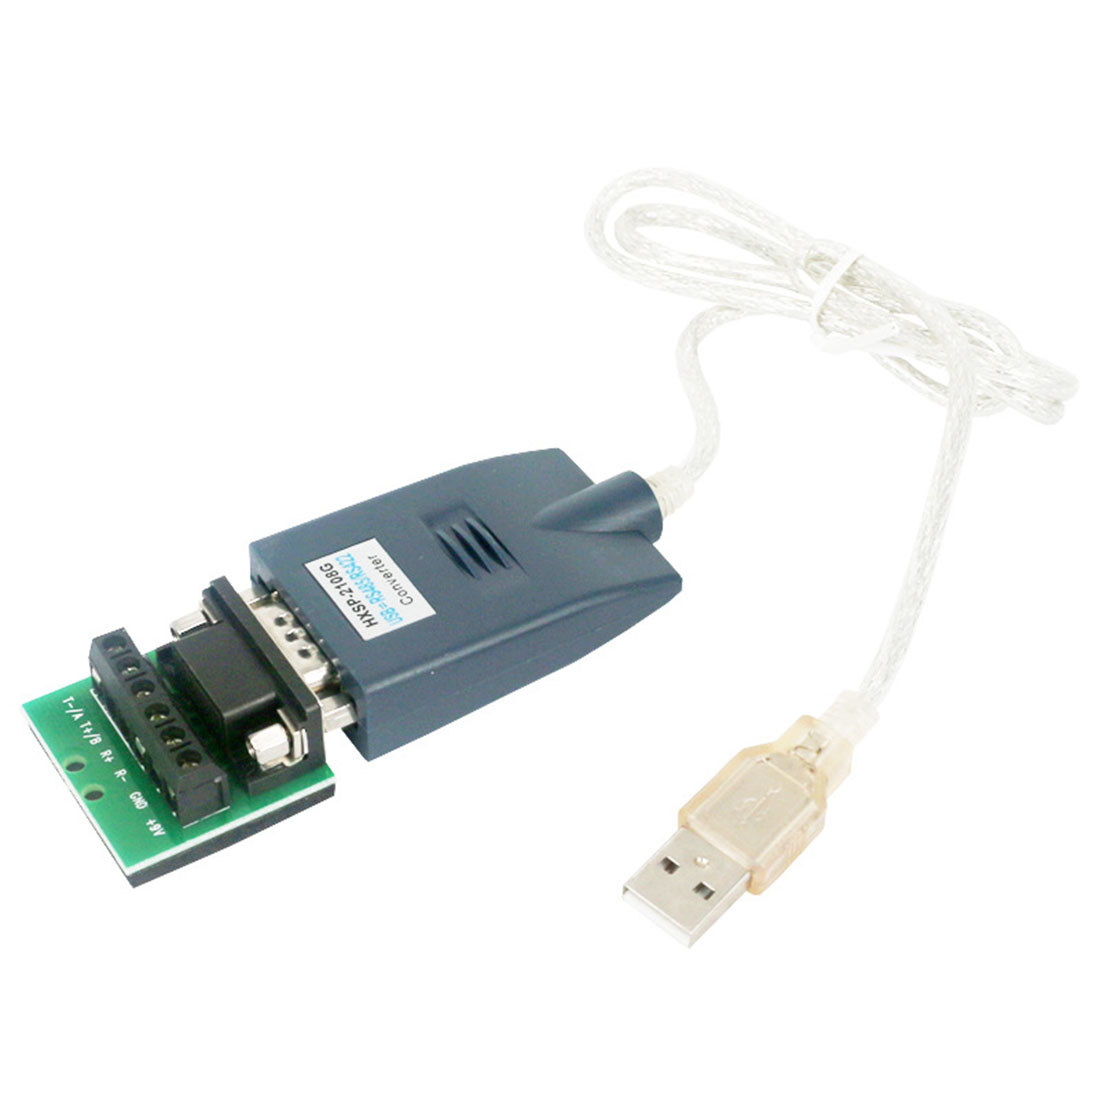 USB 2.0 to RS-485/422/232 DB9 COM Serial Cable Converter Adapter FTDI Chip Industrial 400W Lightning Protection 70cm image